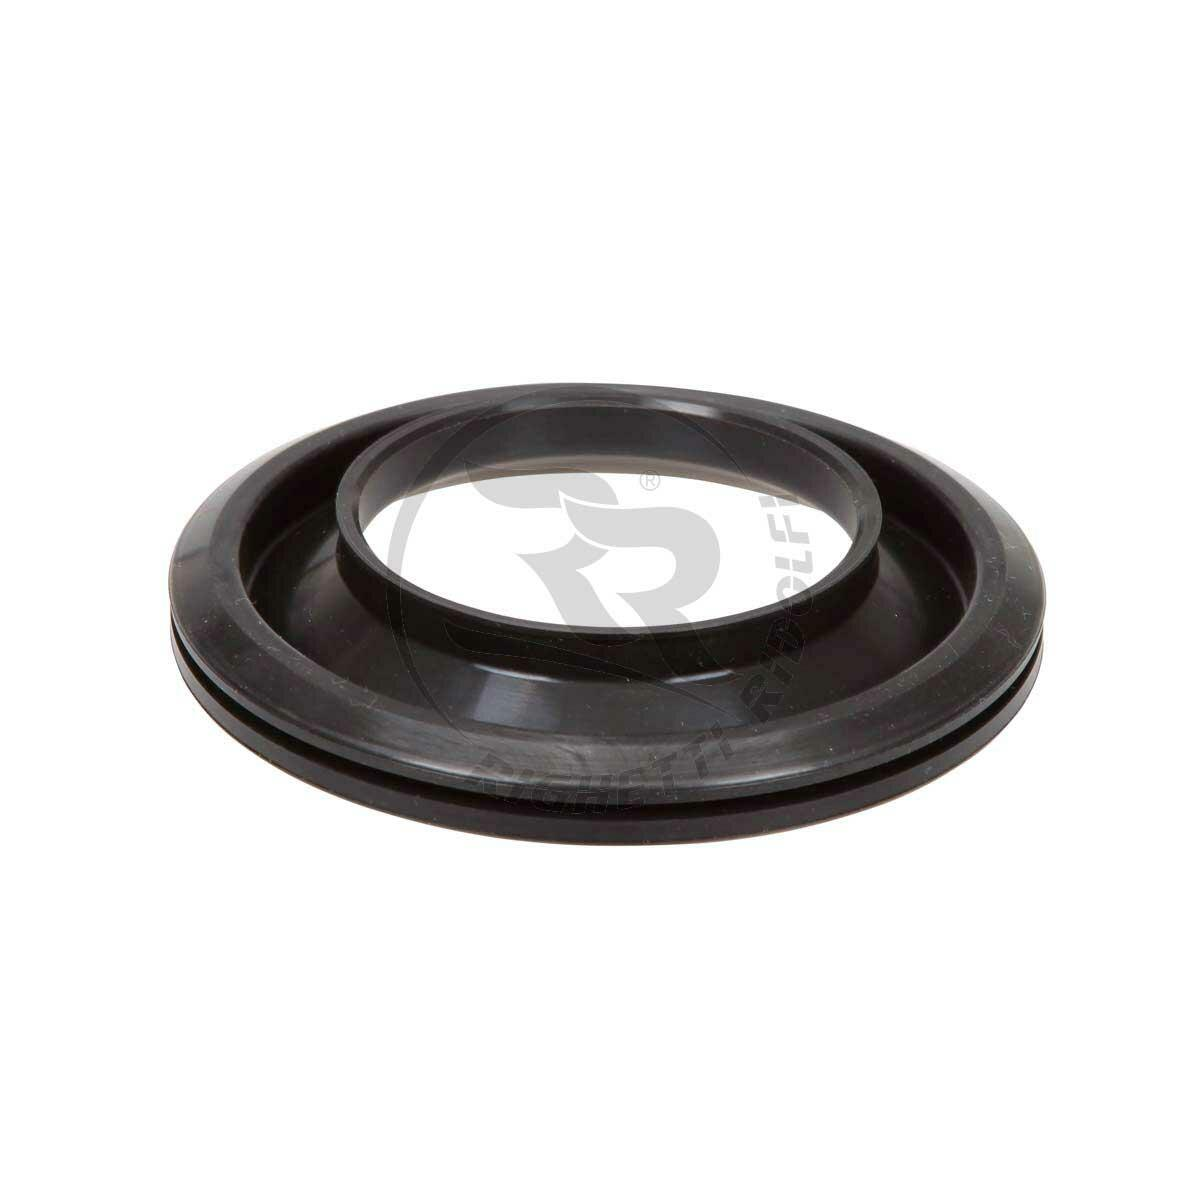 Air box flange for Active Noise Filter